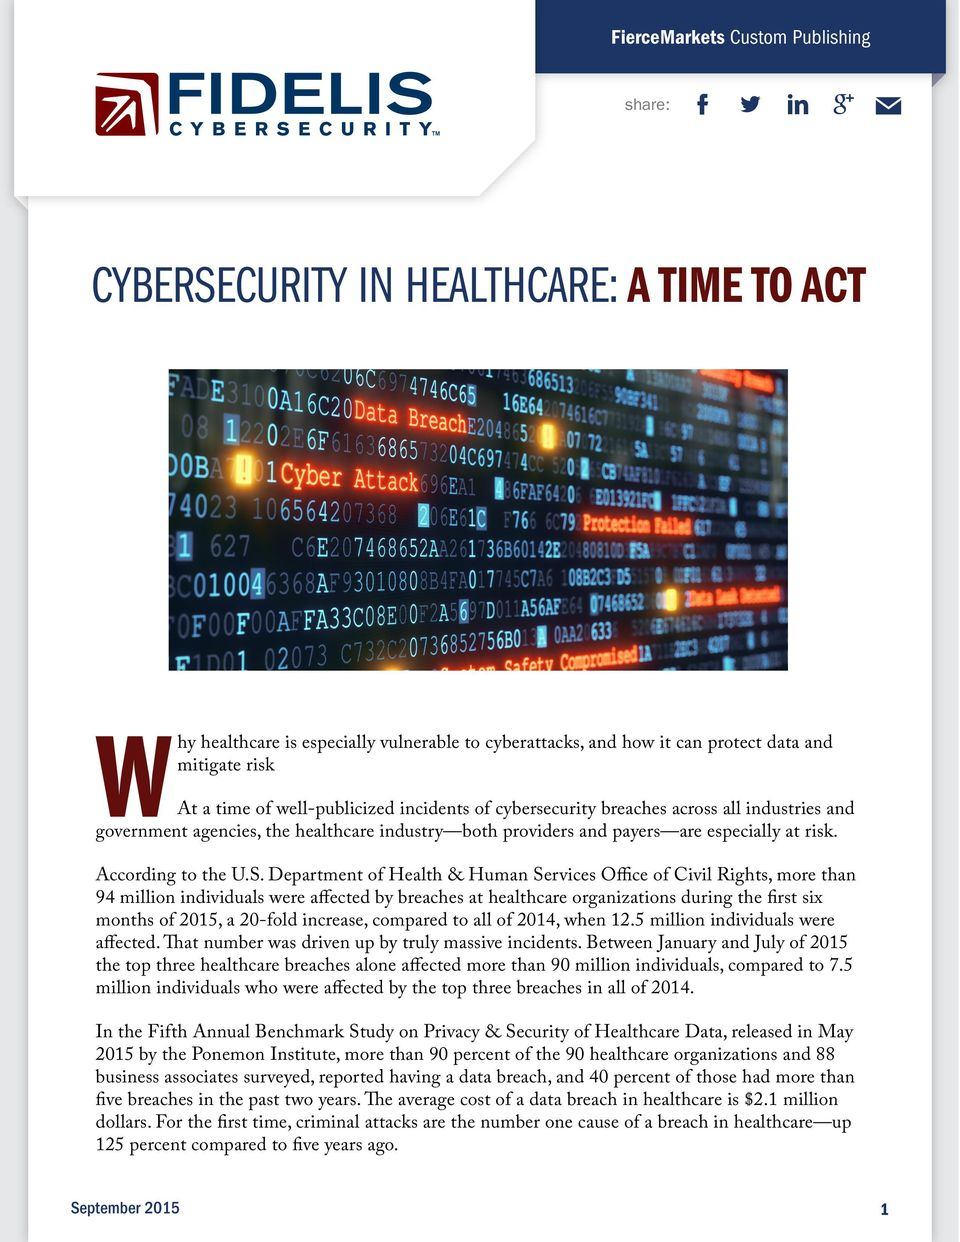 Department of Health & Human Services Office of Civil Rights, more than 94 million individuals were affected by breaches at healthcare organizations during the first six months of 2015, a 20-fold